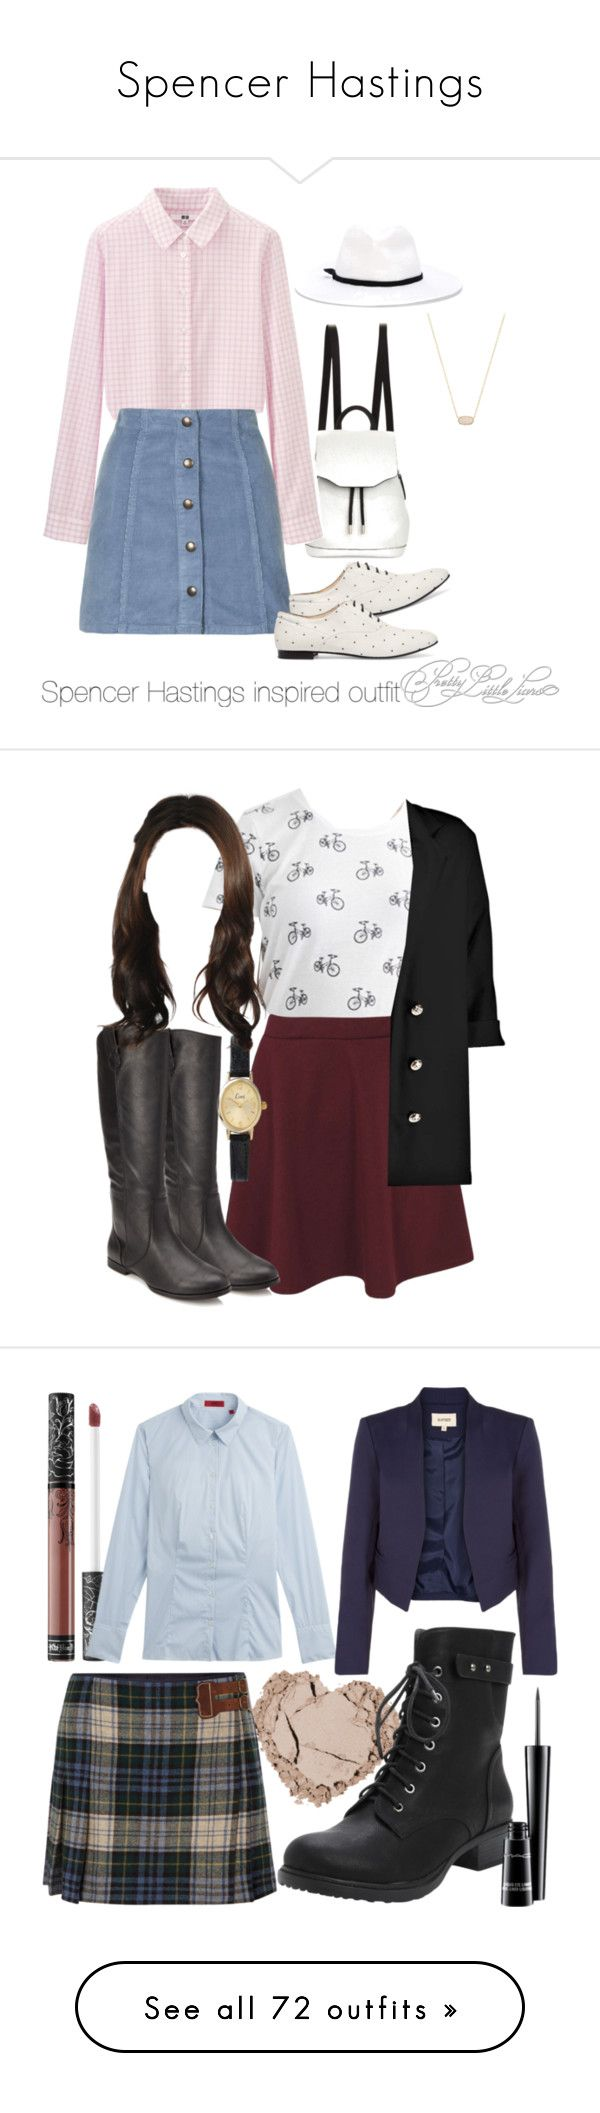 """""""Spencer Hastings"""" by xxoxxo-76 ❤ liked on Polyvore featuring rag & bone, Uniqlo, Topshop, Tod's, Forte Forte, Kendra Scott, bags, handbags, bolsas and accessories"""